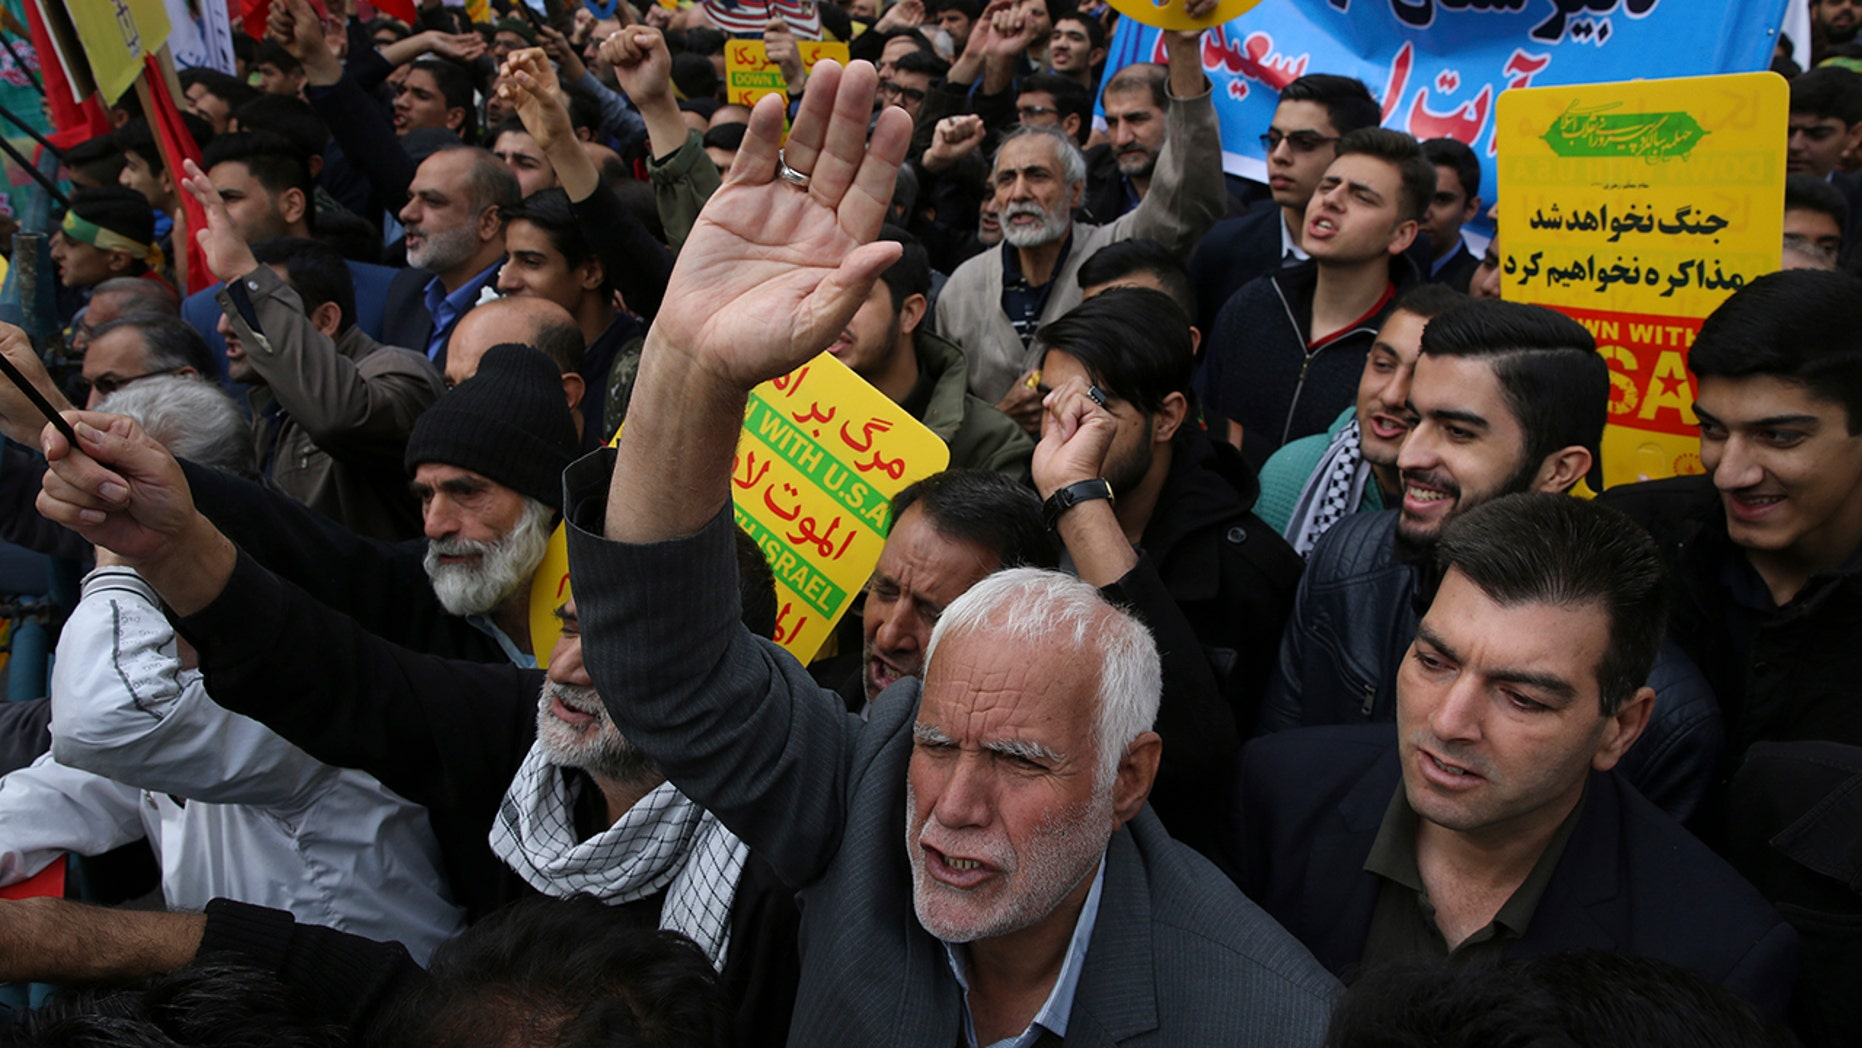 Demonstrators chant slogans during an annual rally in front of the former U.S. Embassy in Tehran, Iran, on Sunday, Nov. 4, 2018, to mark the 39th anniversary of the seizure of the embassy by militant Iranian students.